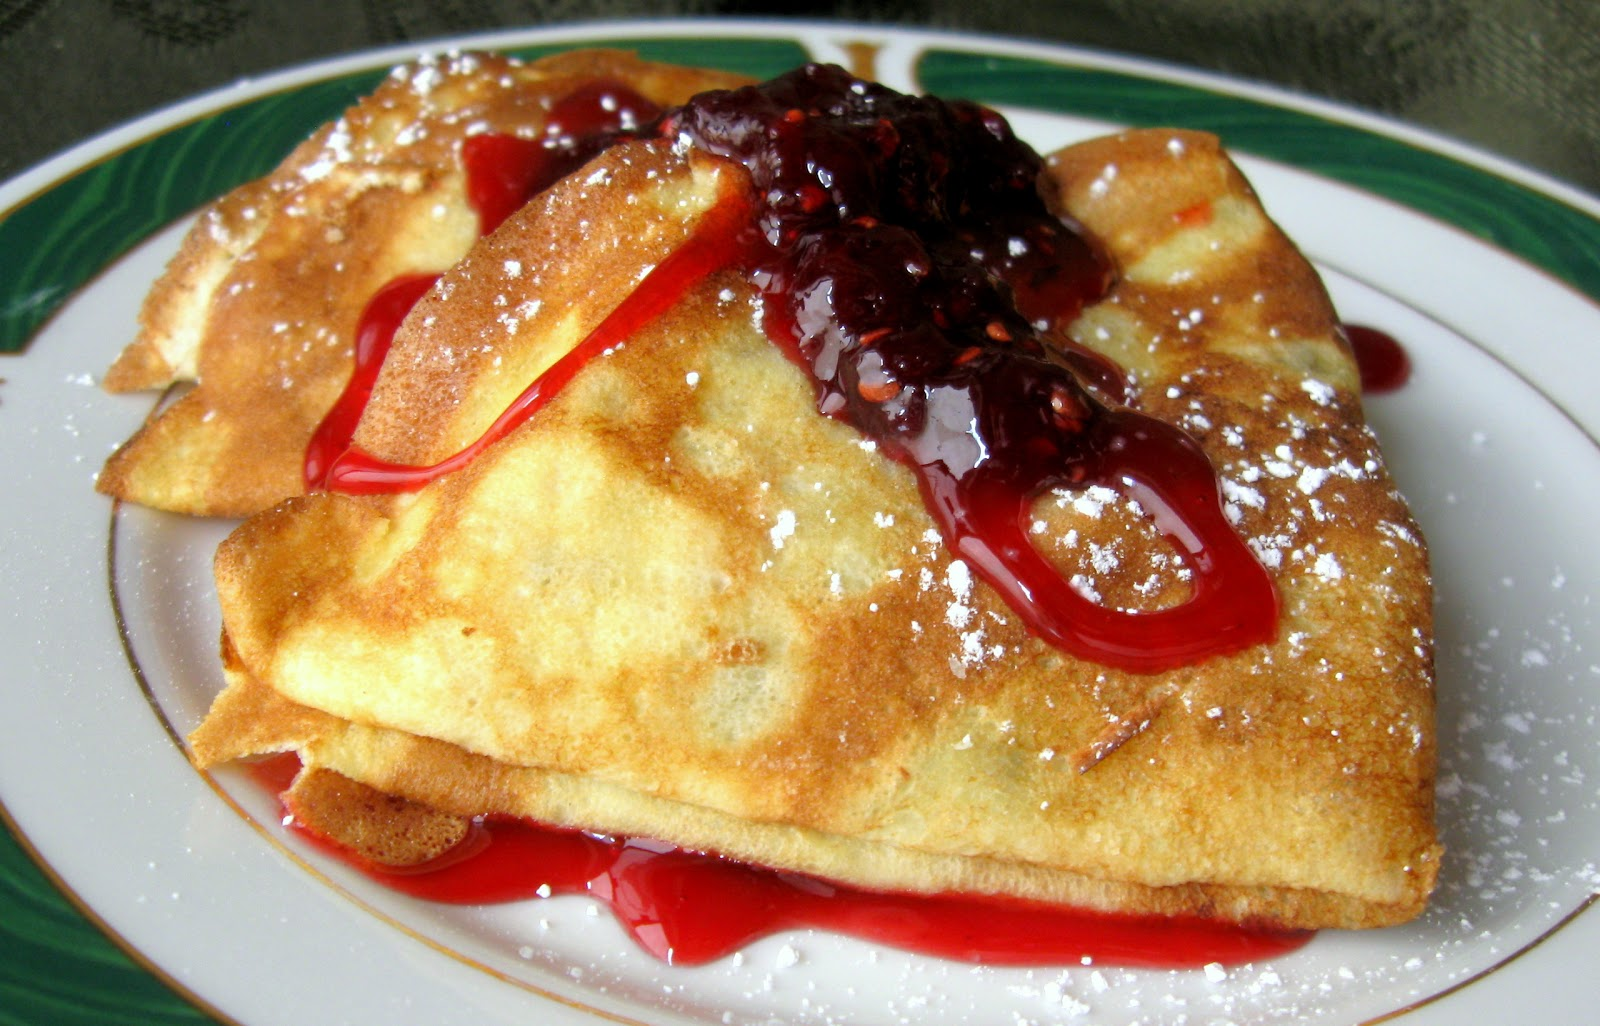 Dessert Crêpes served with Raspberry Sauce and Preserves